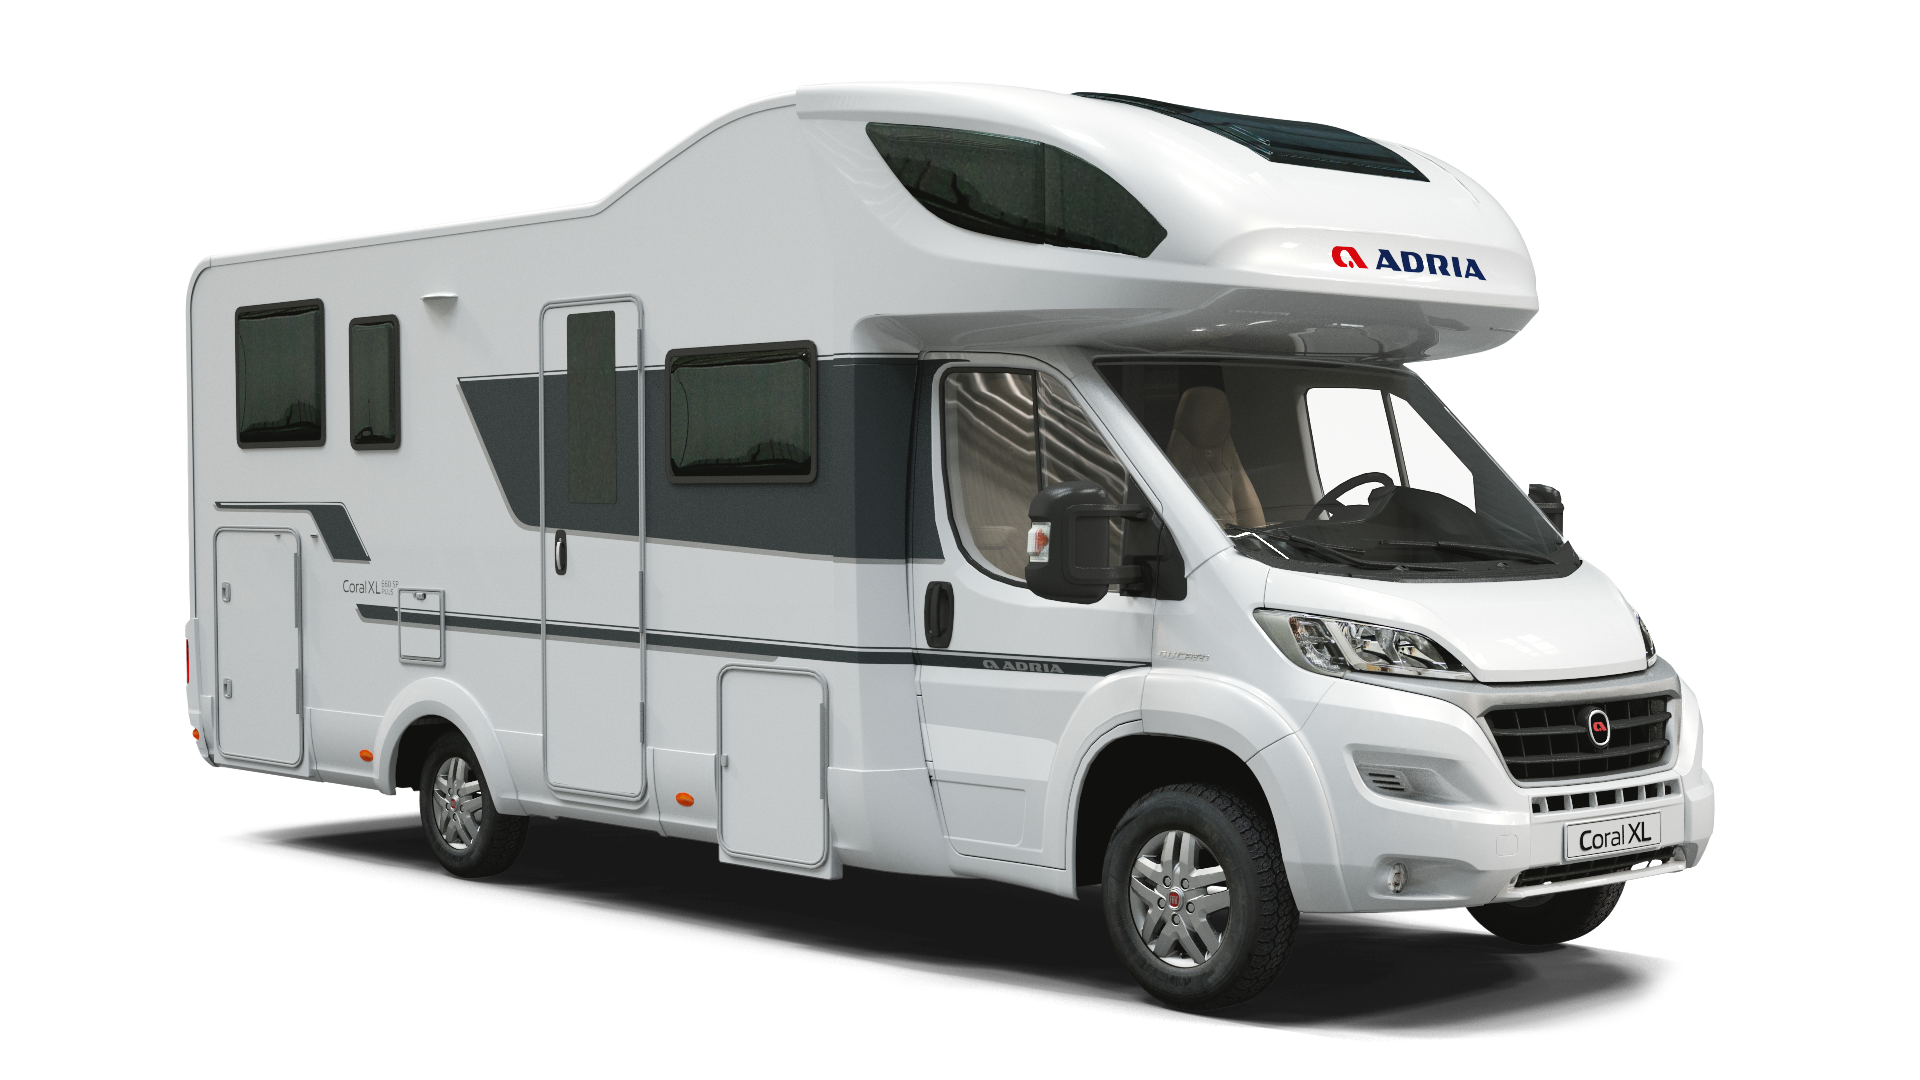 Adria Coral XL Plus 600 DP